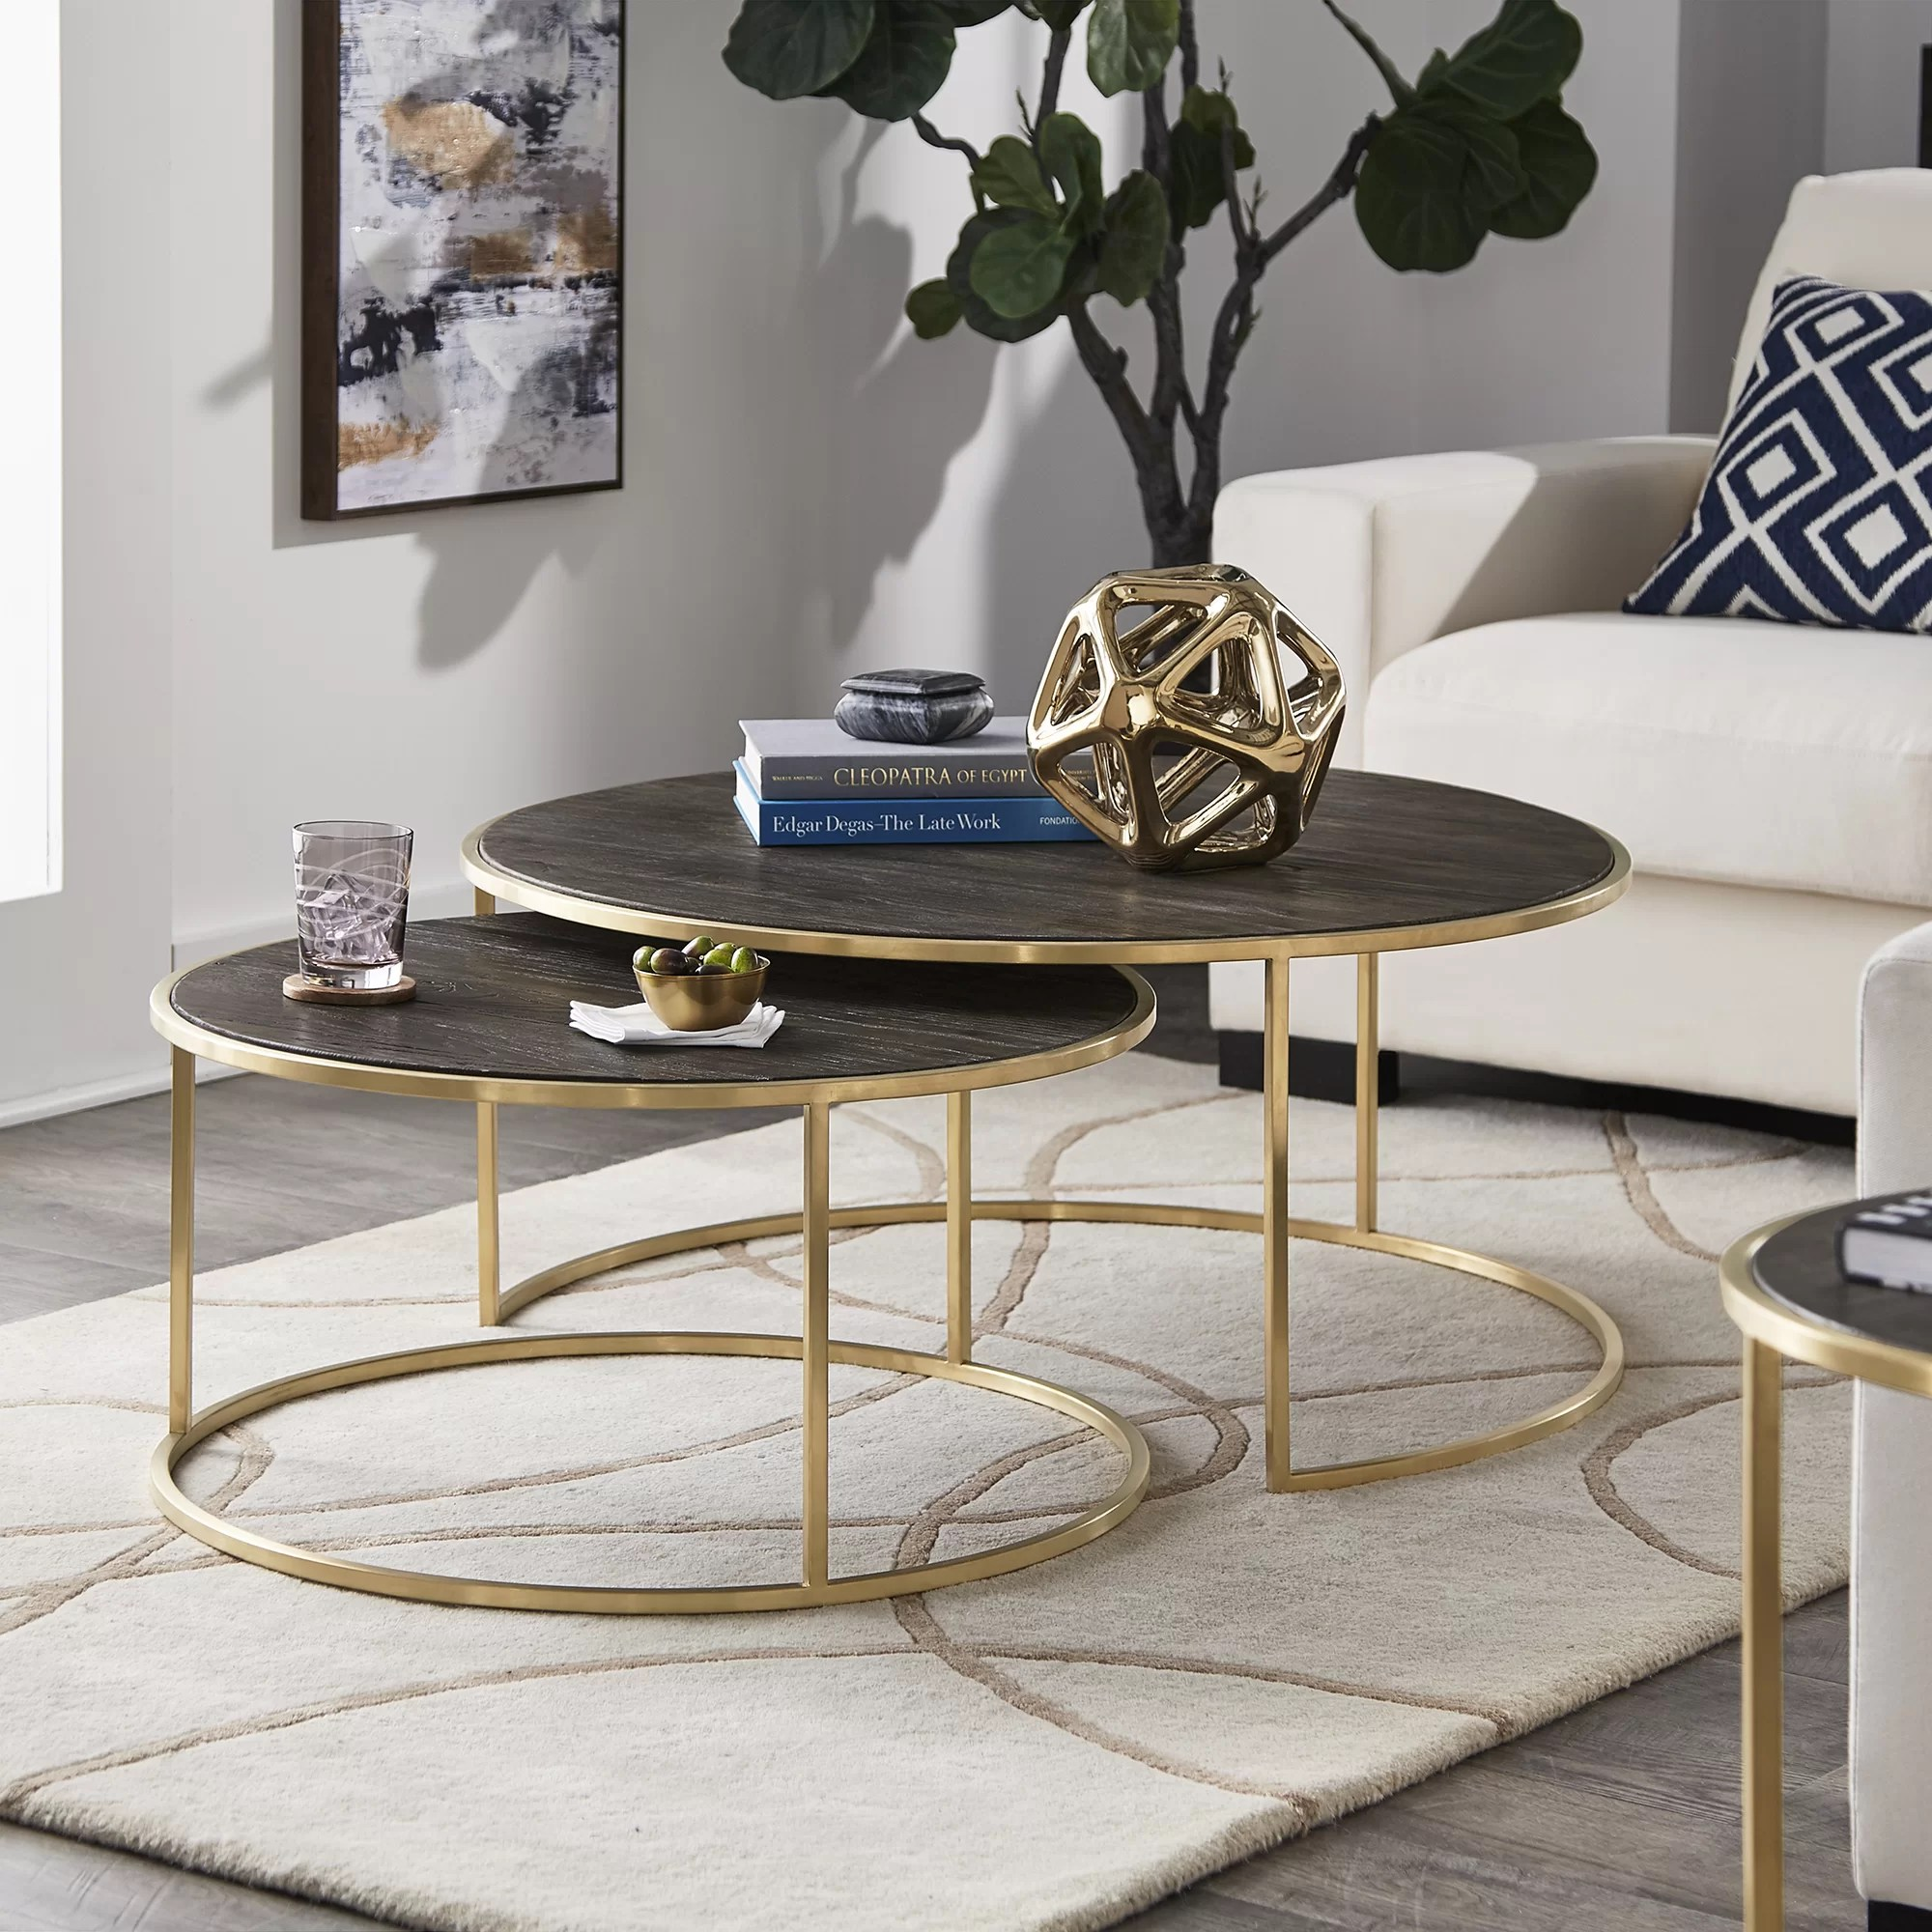 dupont 2 piece coffee table set